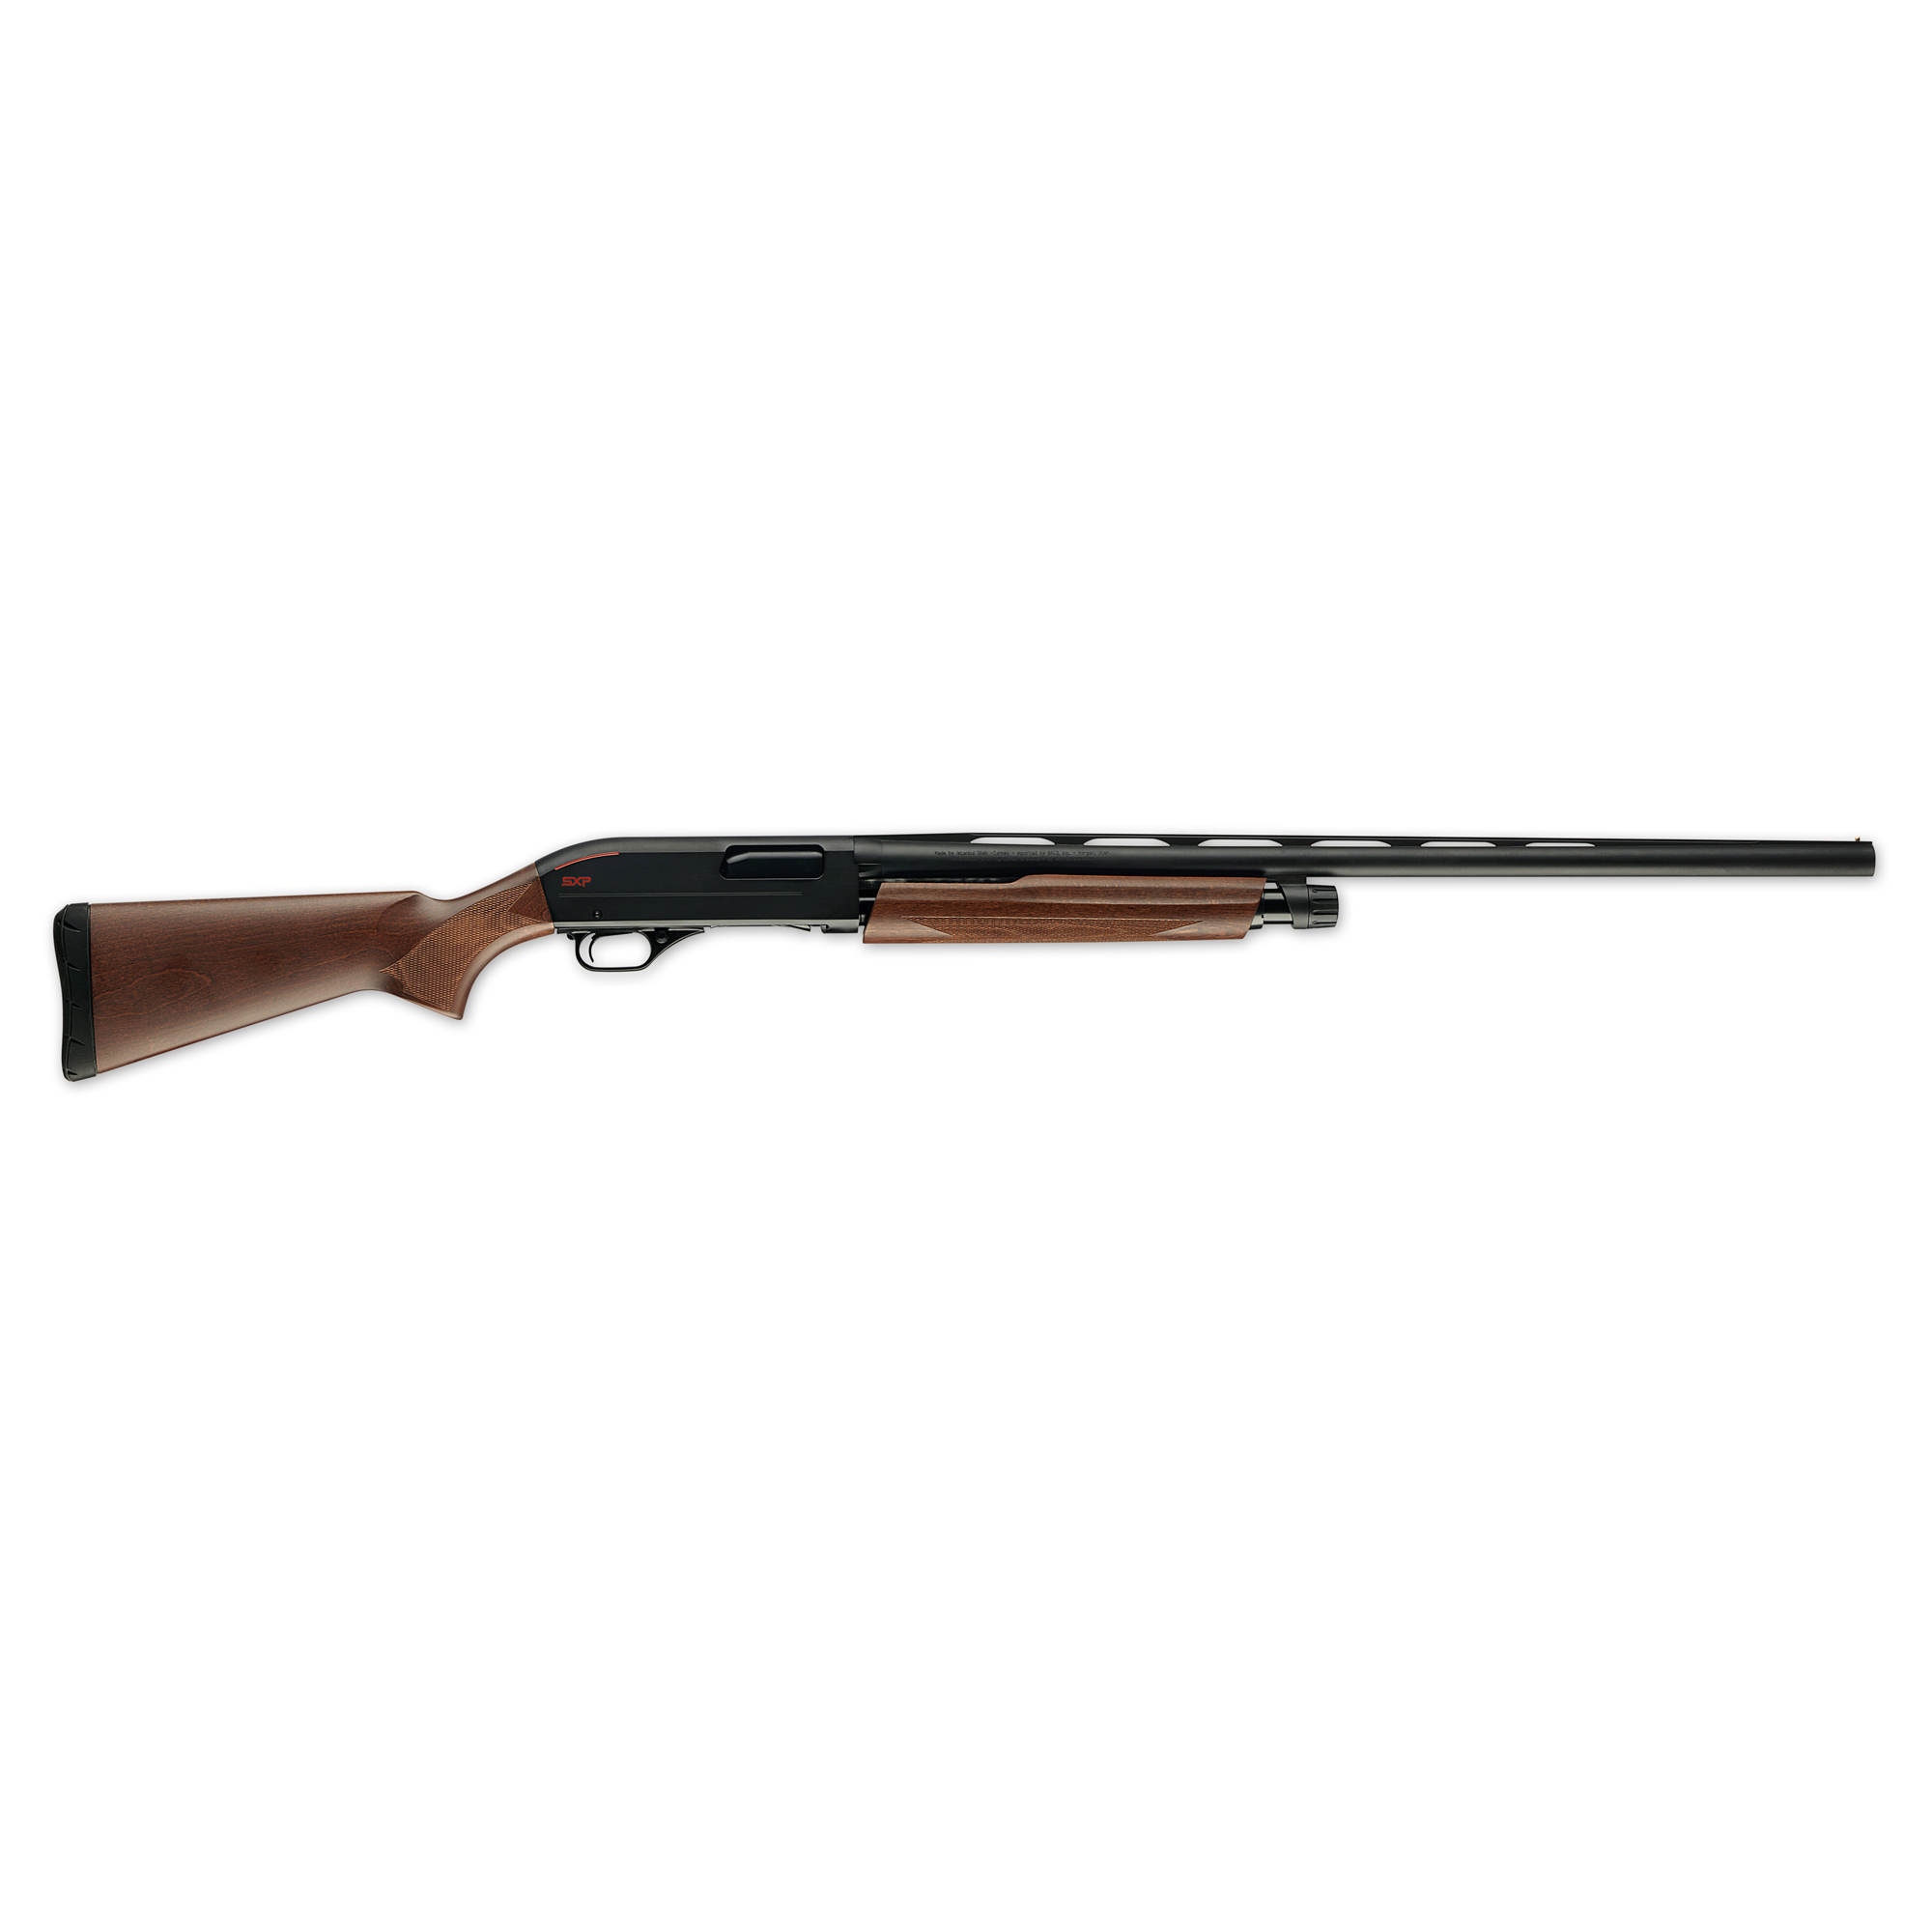 """Pick up the new Winchester(R) SXP shotgun and experience the light weight"""" centered balance and instant pointability firsthand. The Super X design provides you with the fastest follow-up shots. No other pump offers the feeling of an inertia-assisted slide-action that can deliver three shots in a half second."""